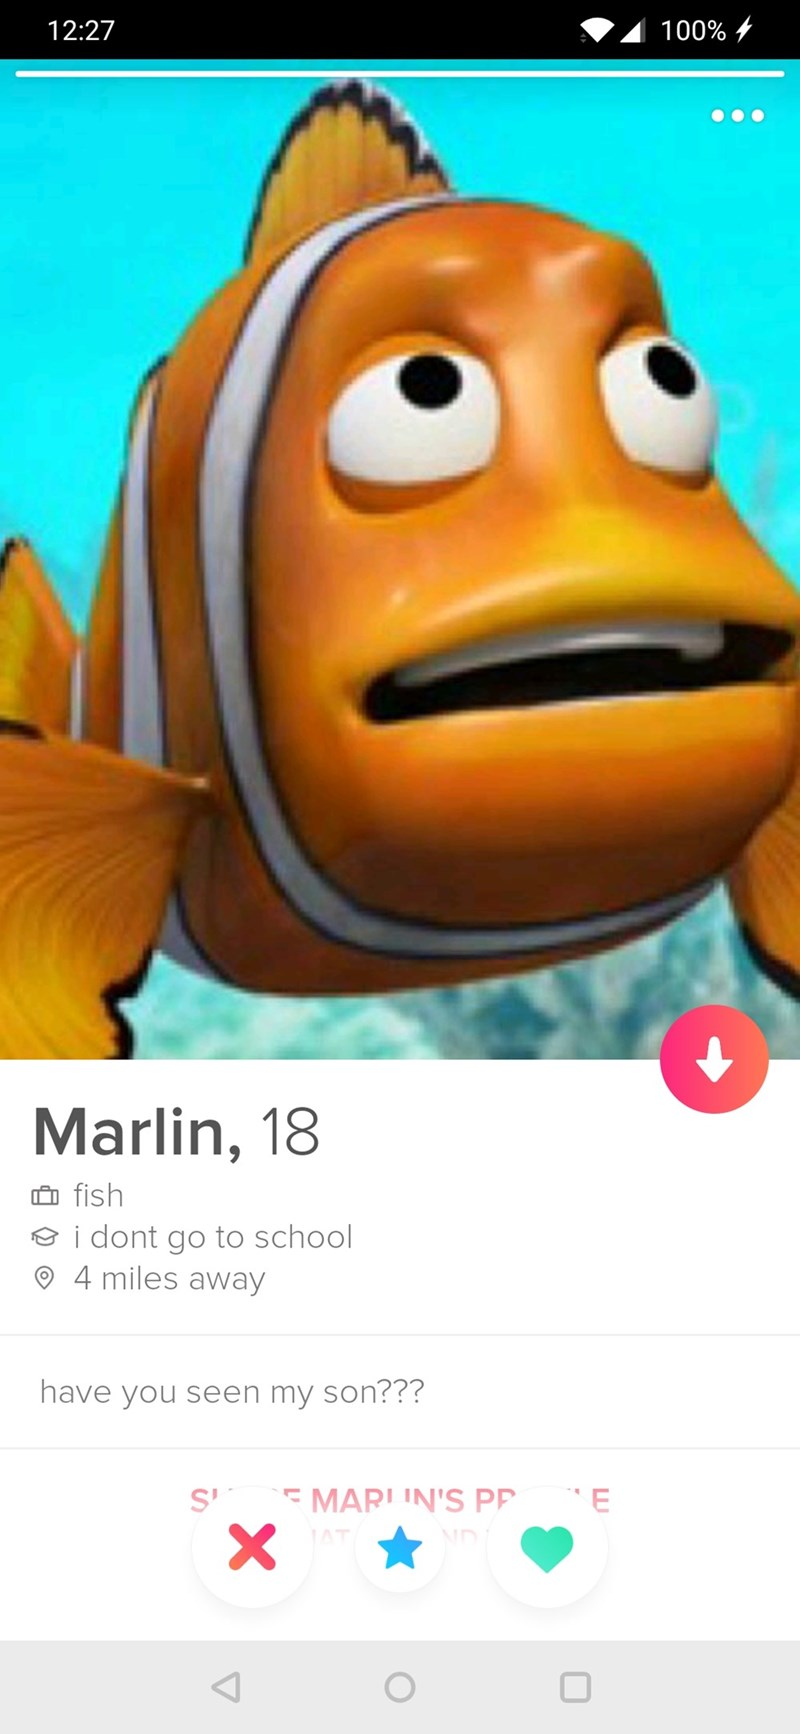 Fake Tinder profile for Marlin from Finding Nemo